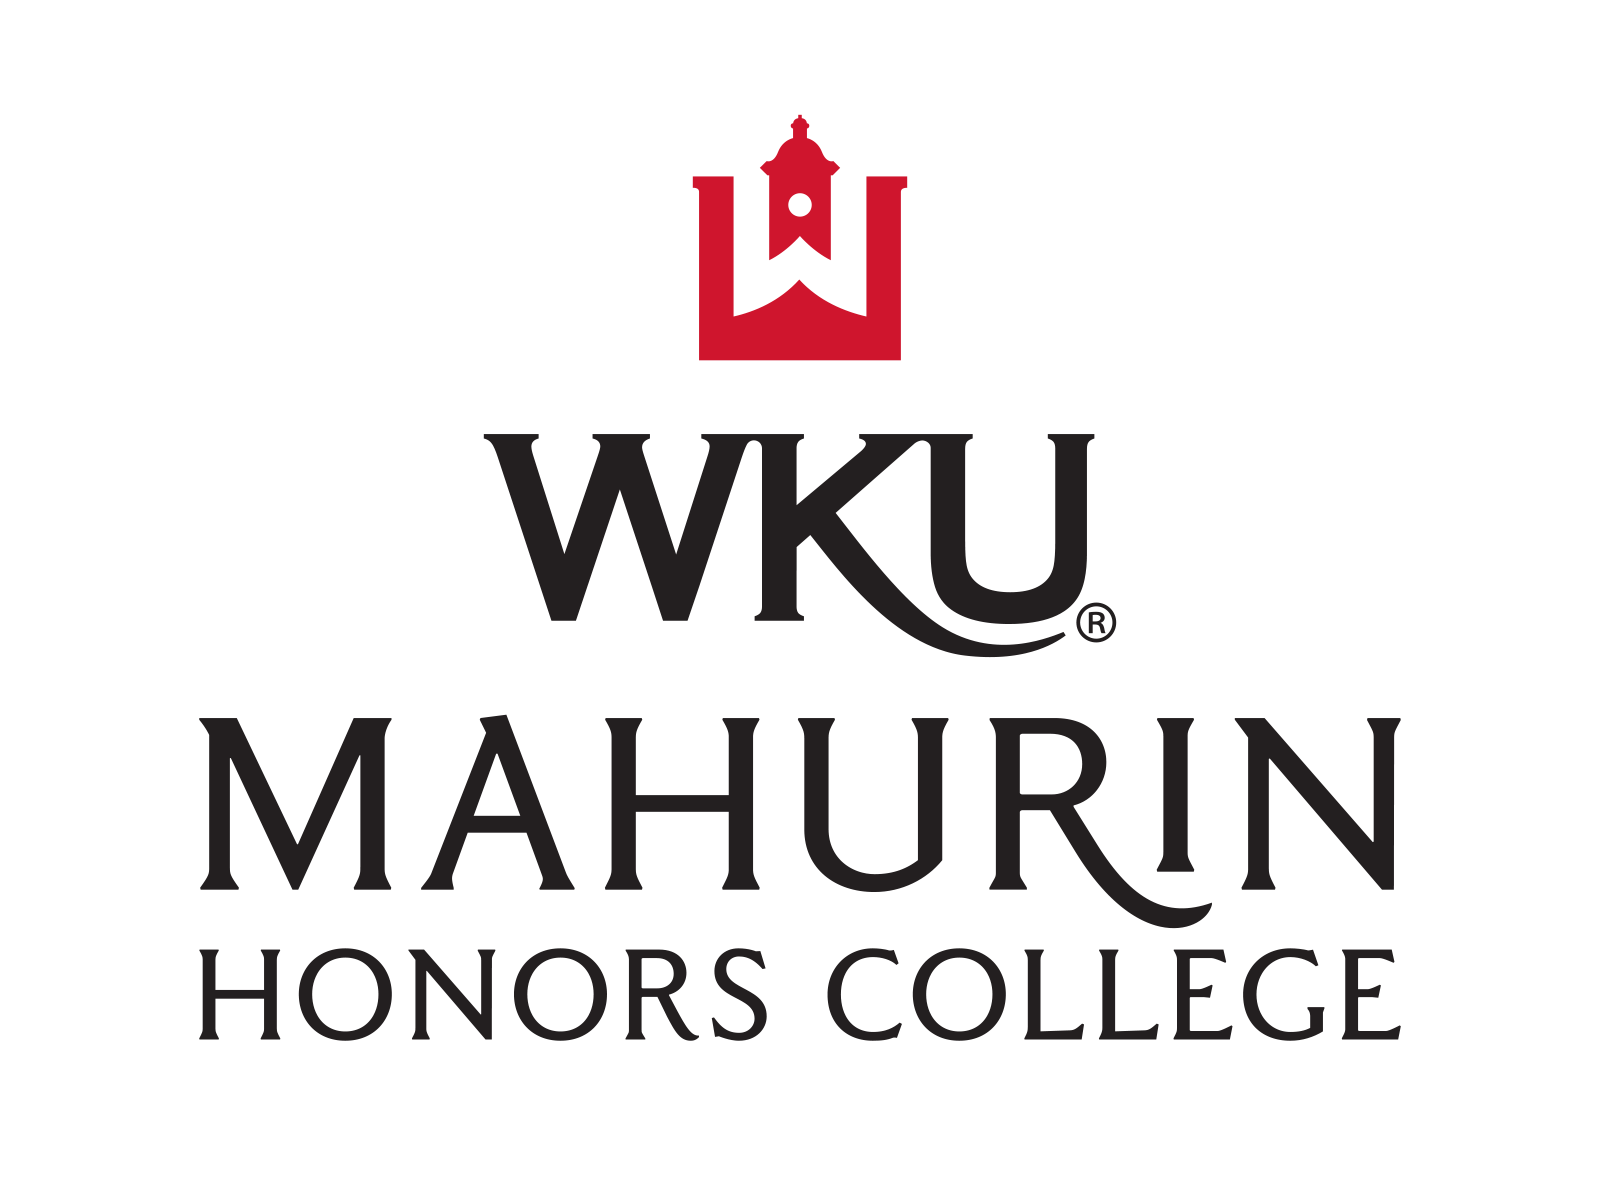 Mahurin Honors College